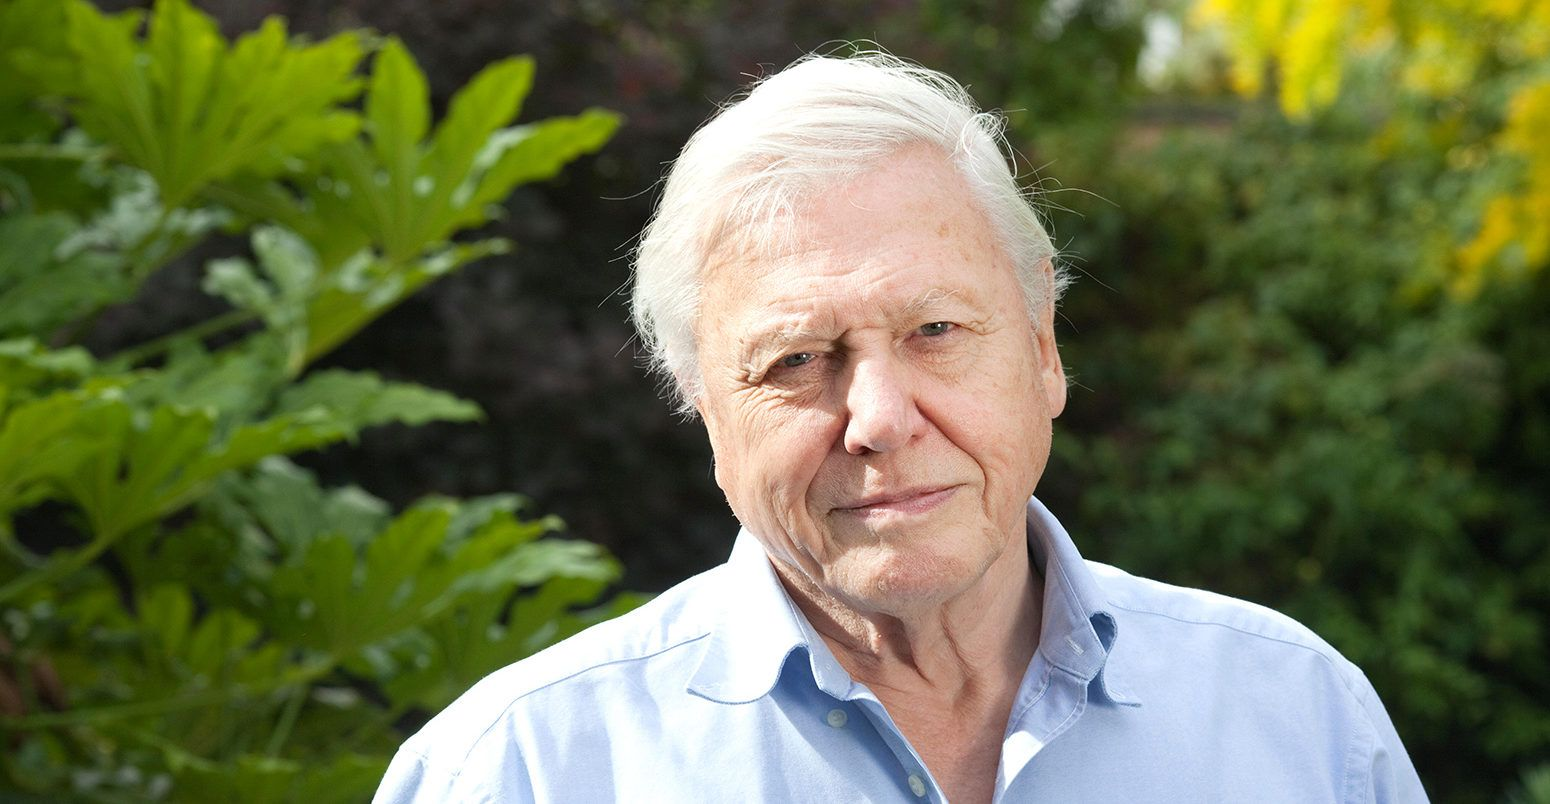 DAVID ATTENBOROUGH WARNS OF 'APPALLING FUTURE,' TELLING DAVOS 'THE GARDEN OF EDEN IS NO MORE'